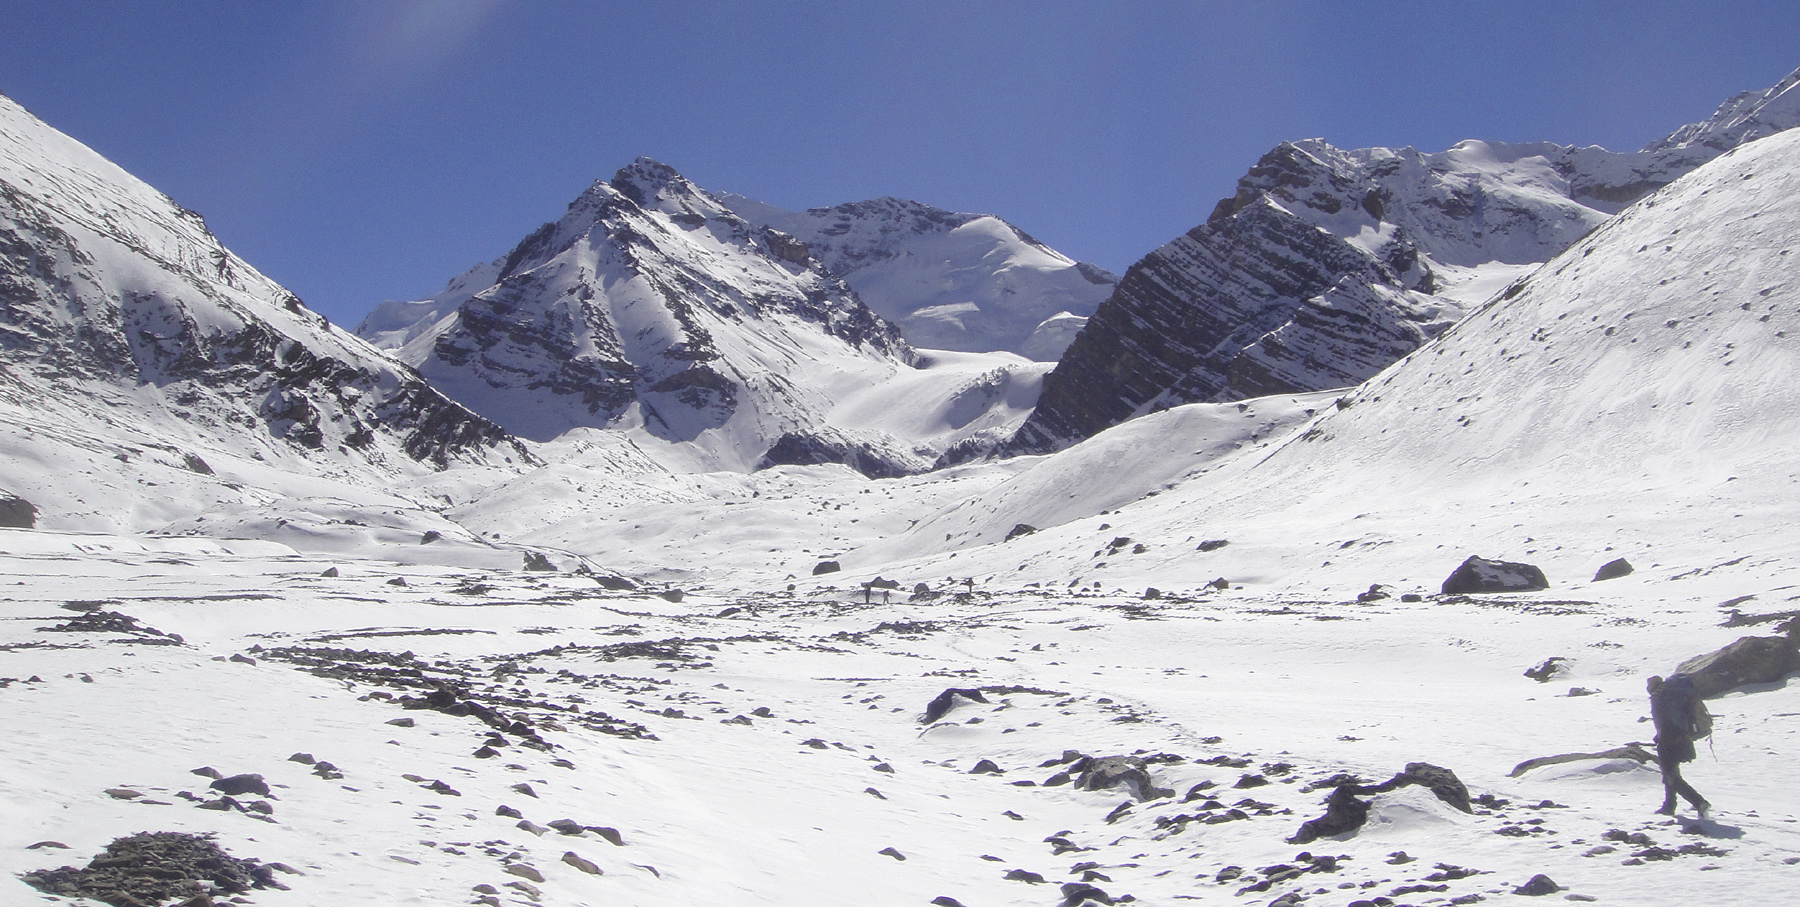 The head of the Singekang Valley. The snow and rock pyramid center is the northwestern outlier (dubbed Singekang Minor) of Singekang. Summit of Singekang is just visible immediately behind. Jeremy Windsor